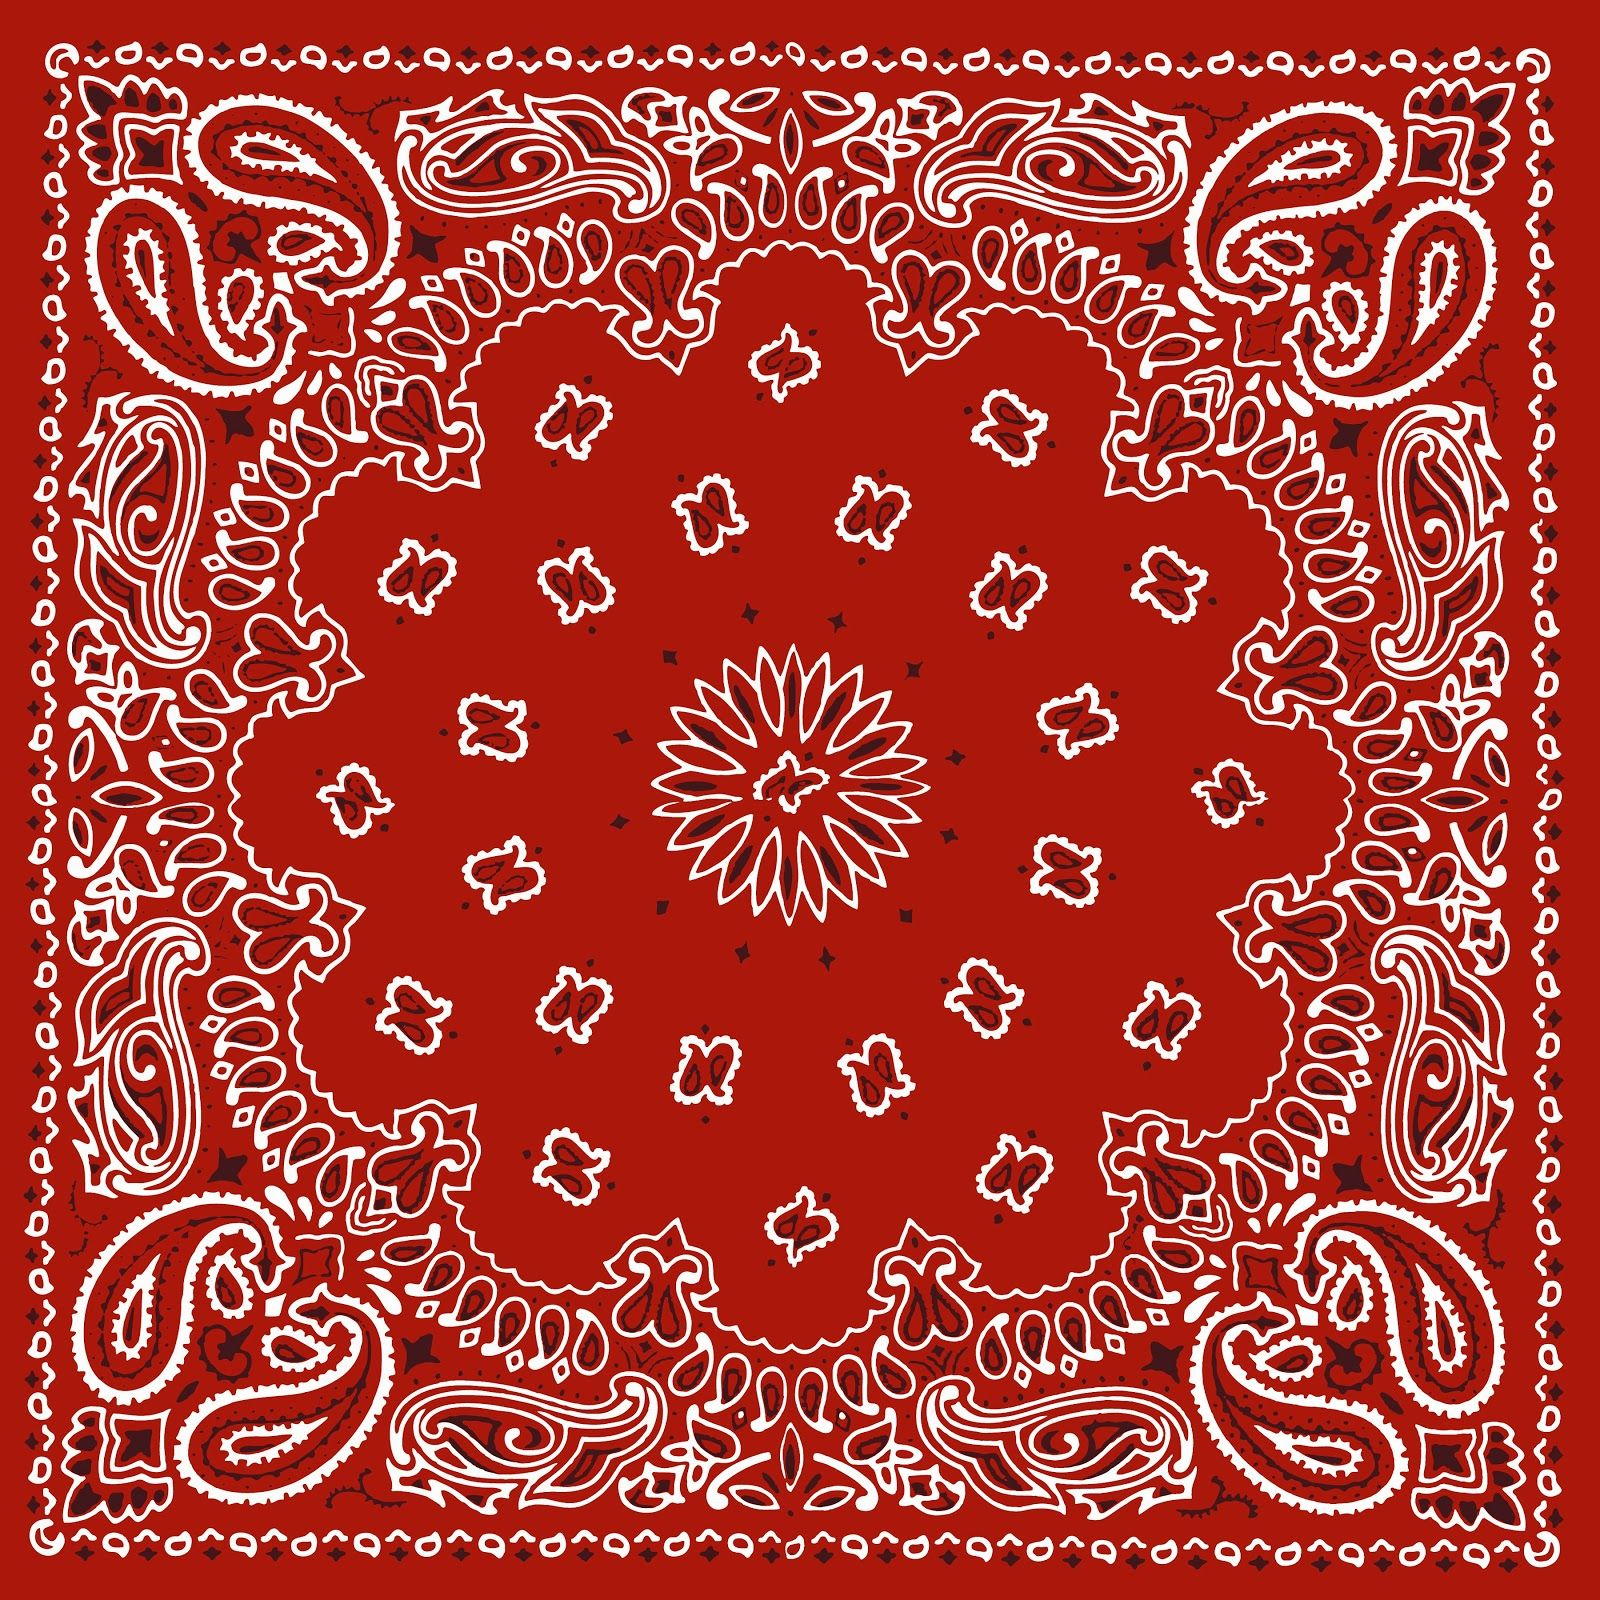 Red bandana printable background backgrounds for Print wallpaper designs